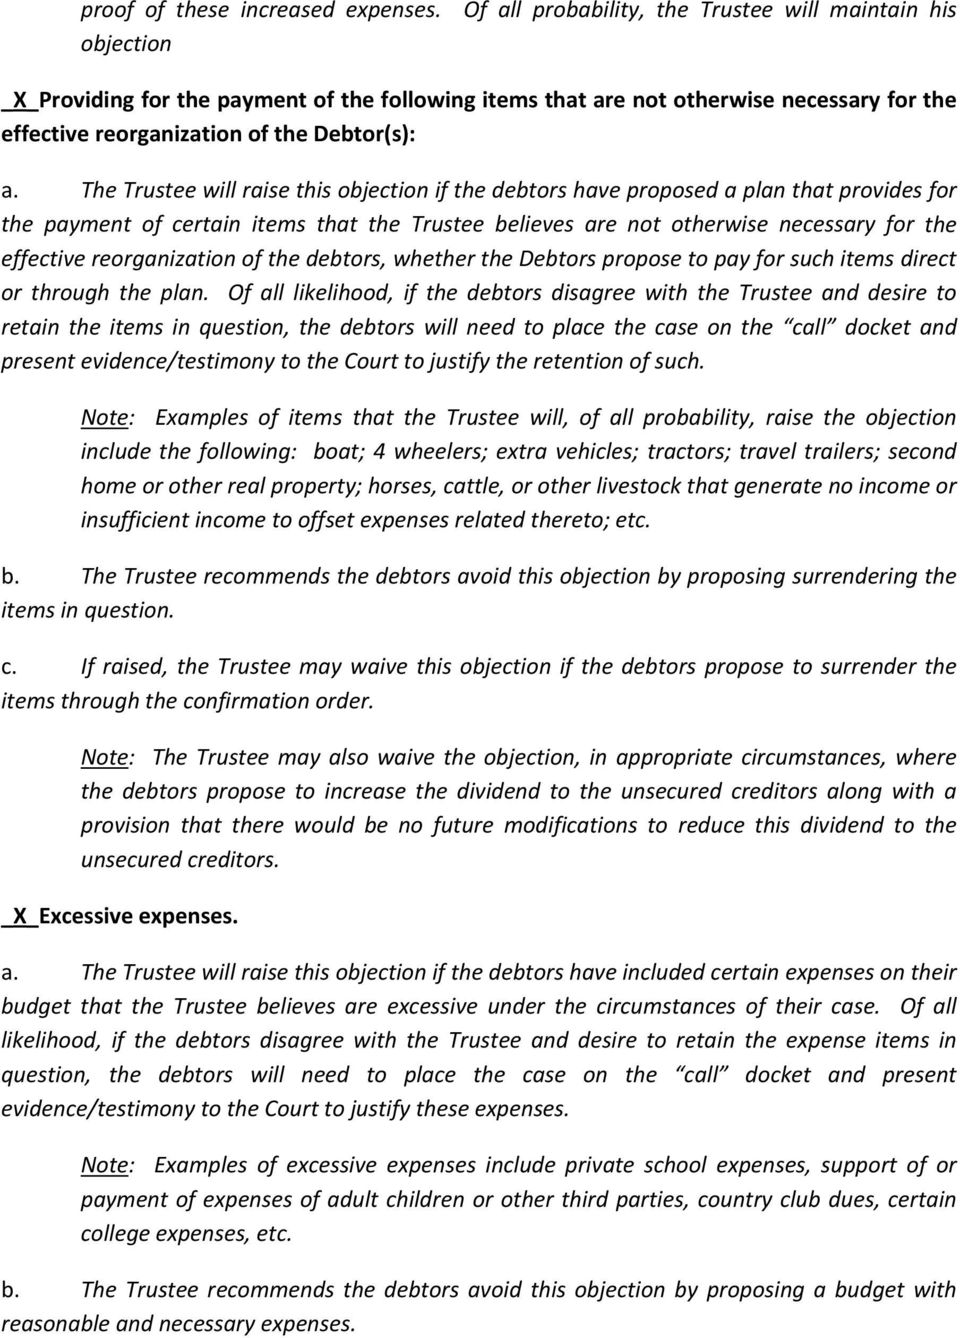 The Trustee will raise this objection if the debtors have proposed a plan that provides for the payment of certain items that the Trustee believes are not otherwise necessary for the effective